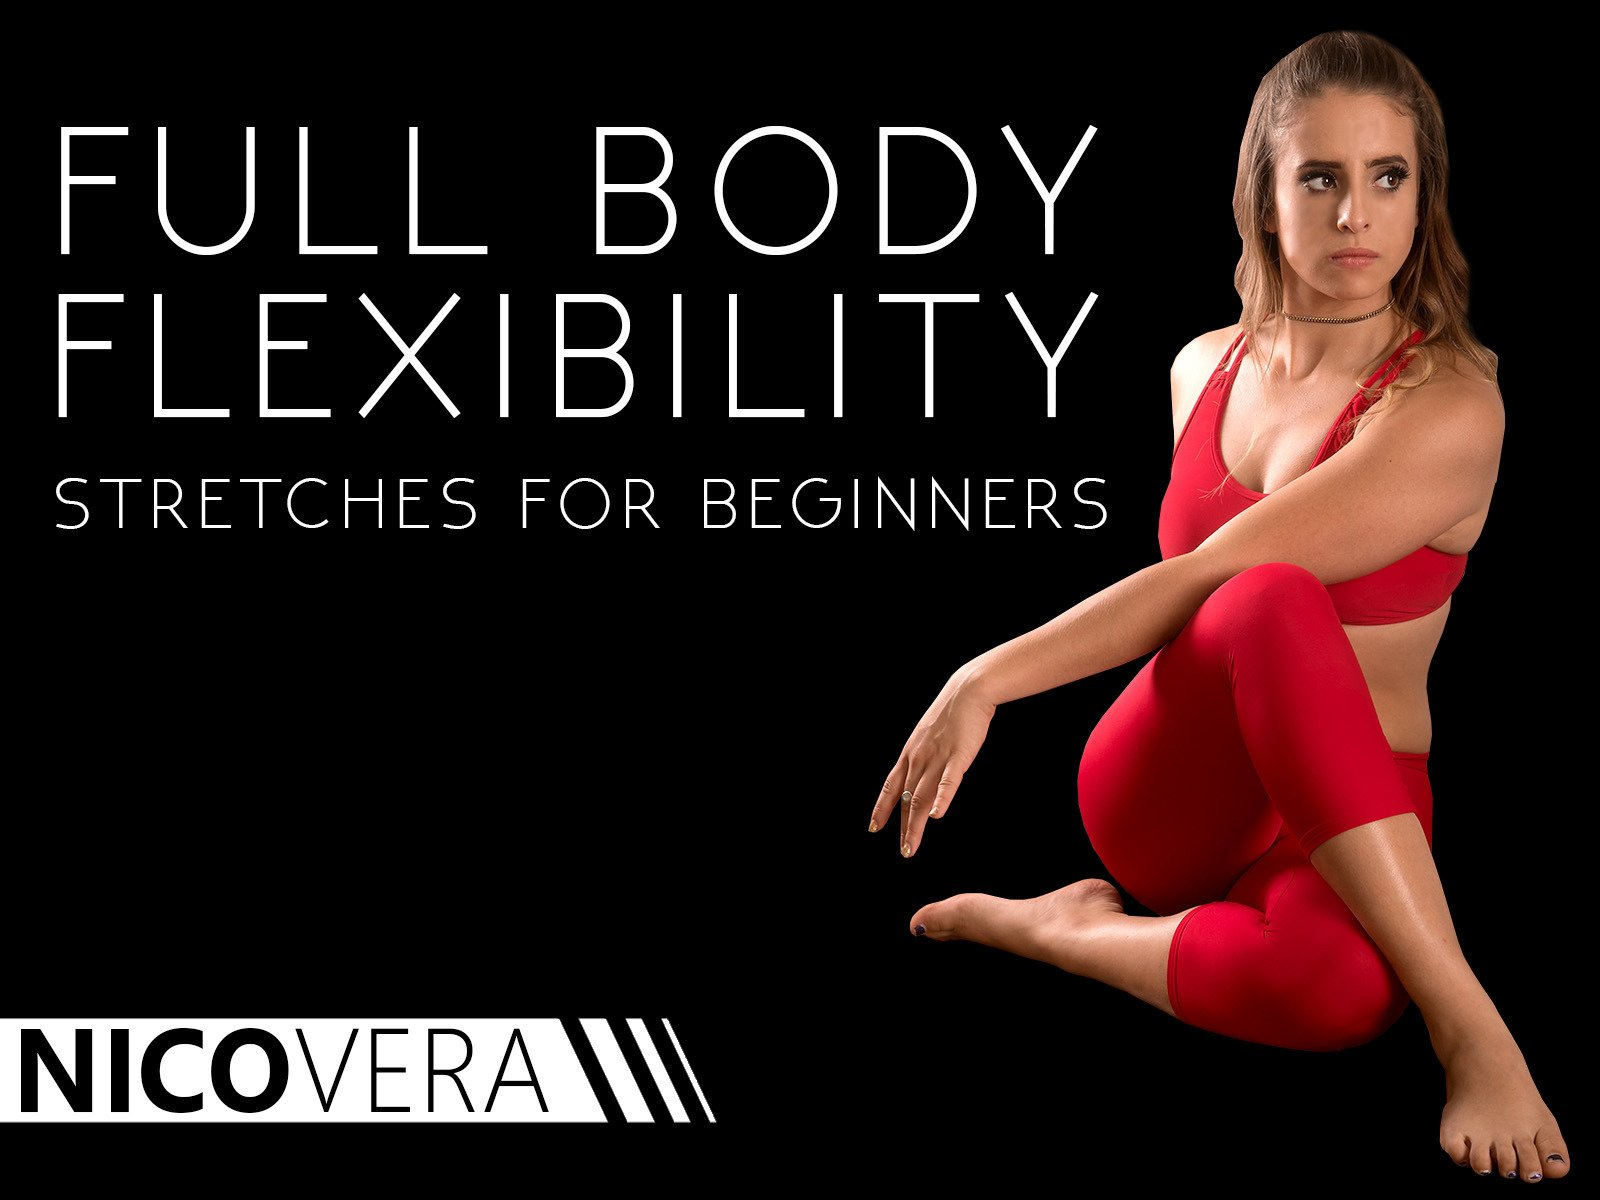 Full Body Flexibility Stretches For Beginners on Amazon Prime Video UK